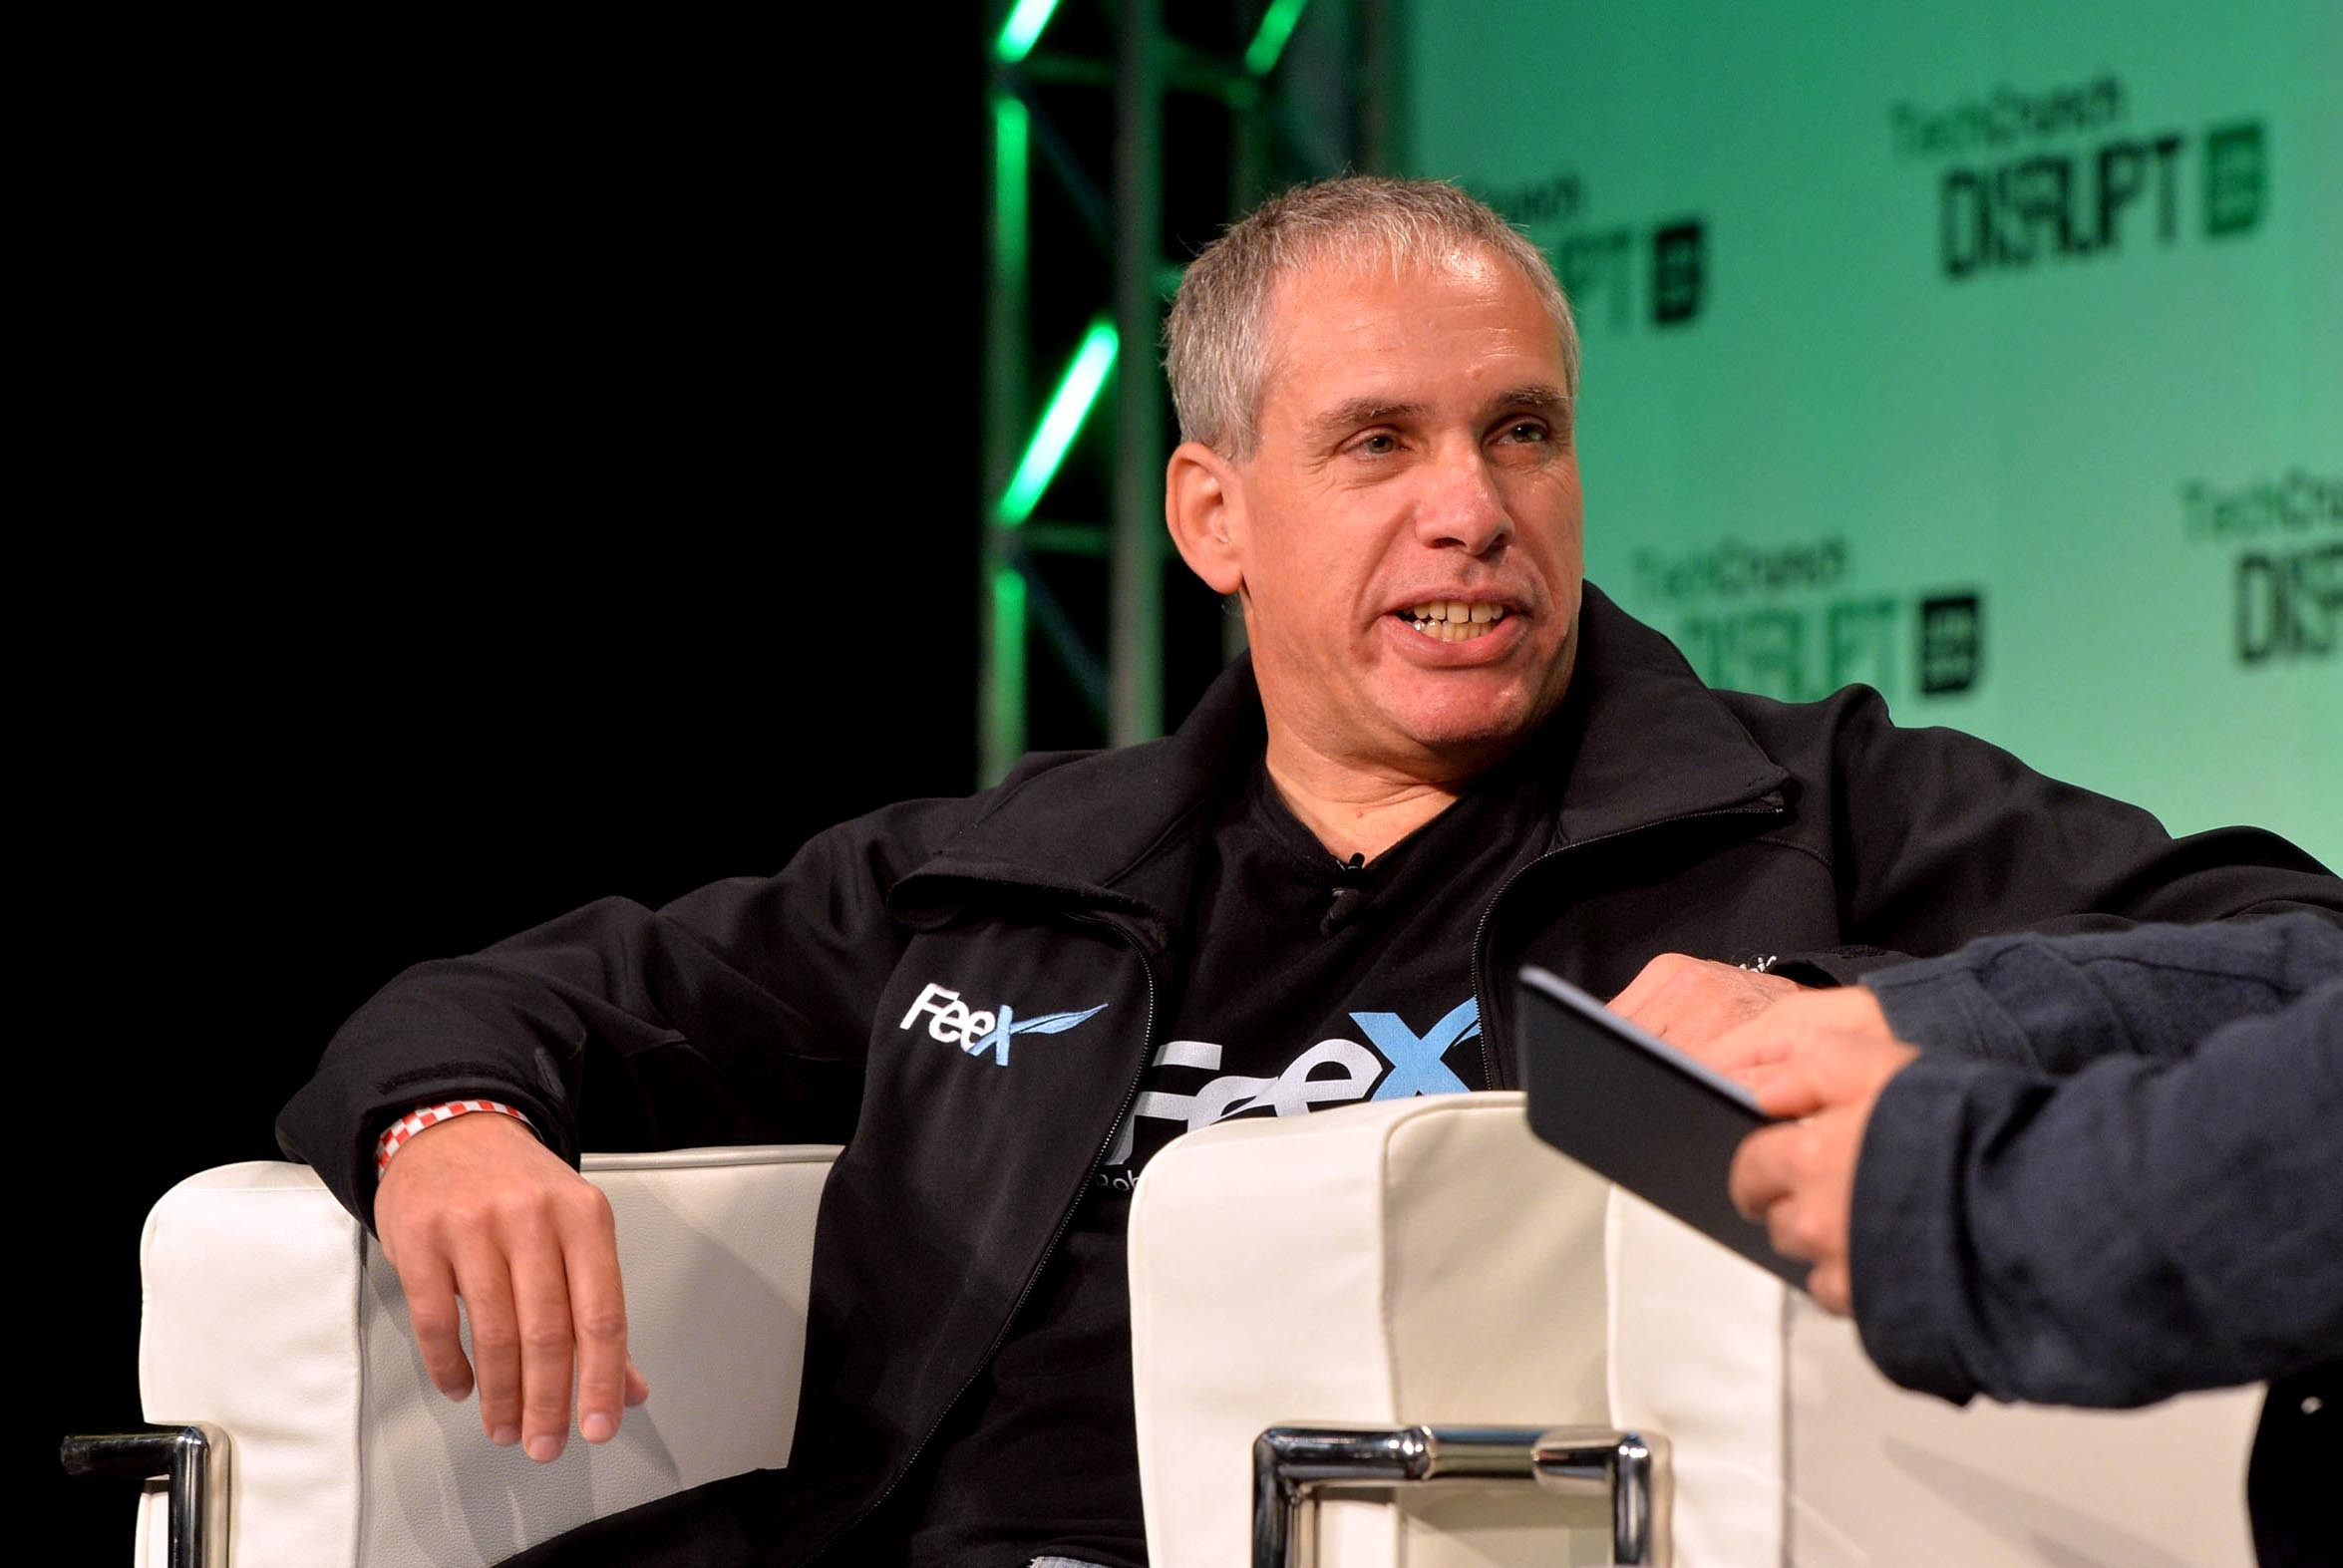 Uri Levine, empreendedor fundador do aplicativo Waze (Foto: Anthony Harvey/Getty Images for TechCrunch)